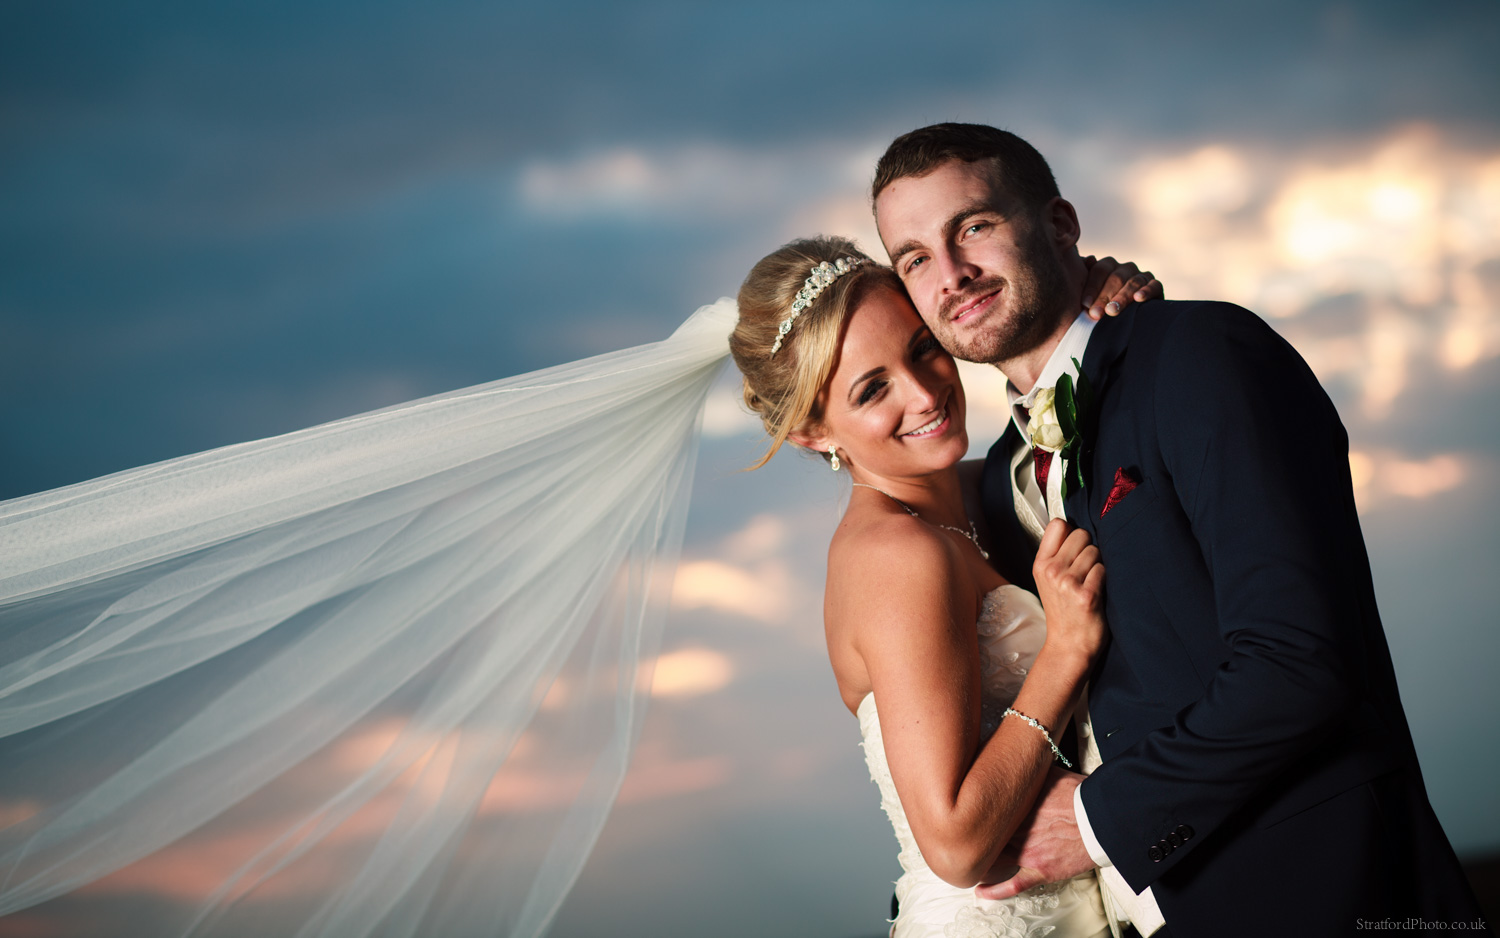 A bride and groom embrace on their wedding day before a setting sun in New Brighton at the Leasowe Castle